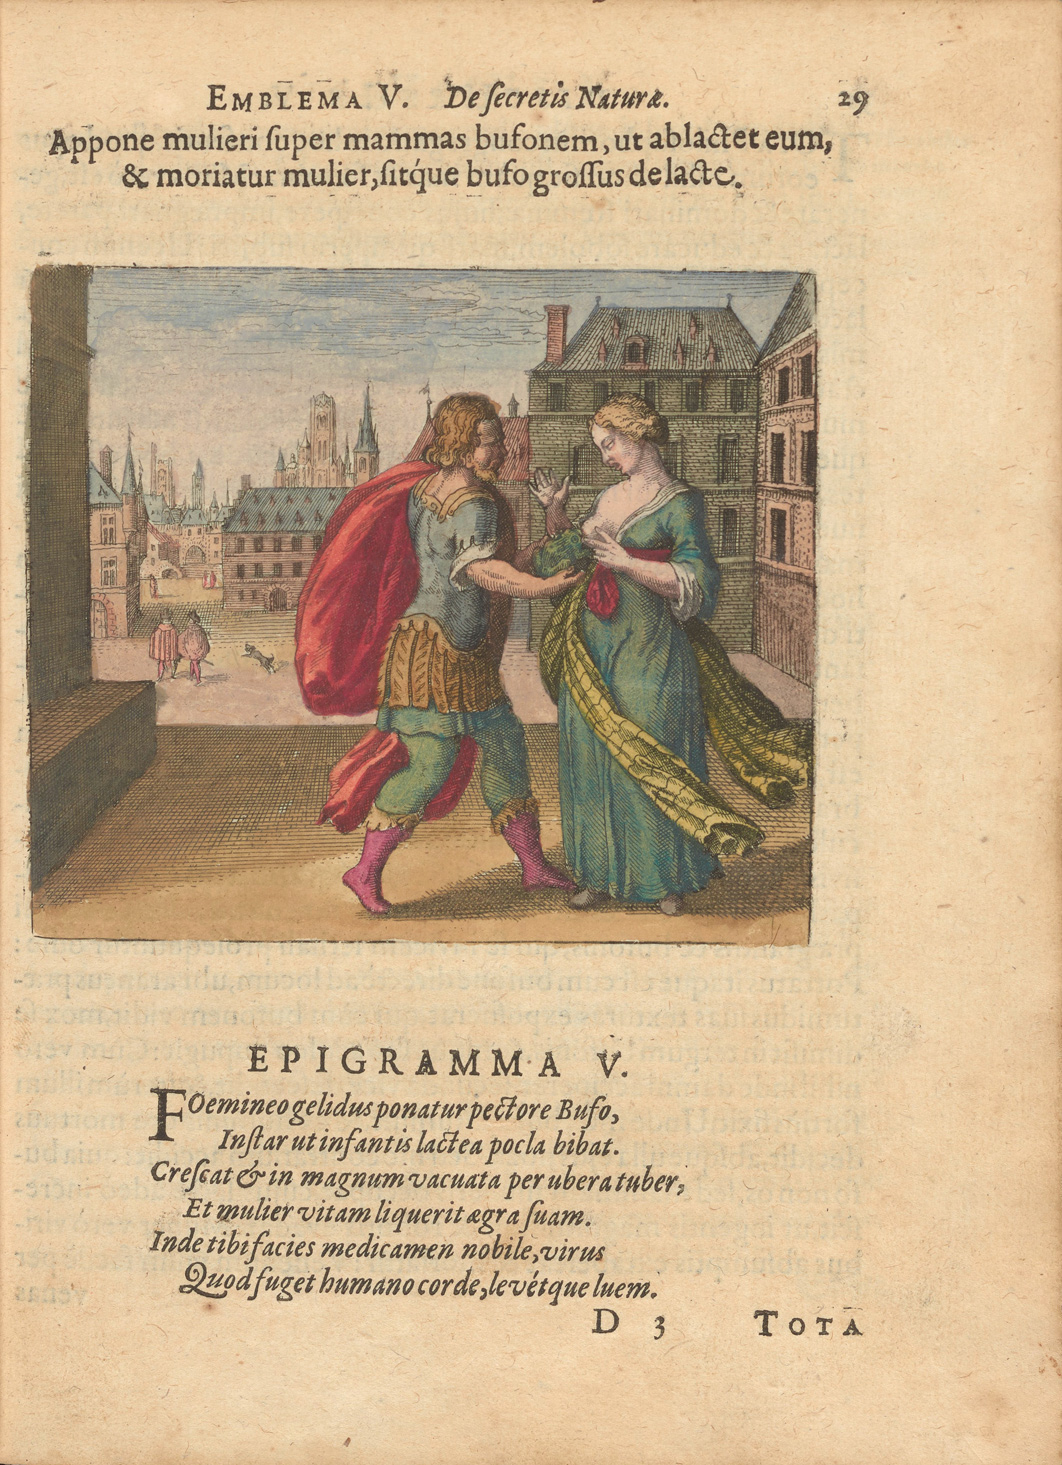 The second page of emblem 5 from Atalanta fugiens shows a motto and epigram in Latin and an image. In the image, a bearded man in classical clothing is foisting a toad towards a woman's breast to nurse. In the background of the courtyard, two men and a dog are walking away.